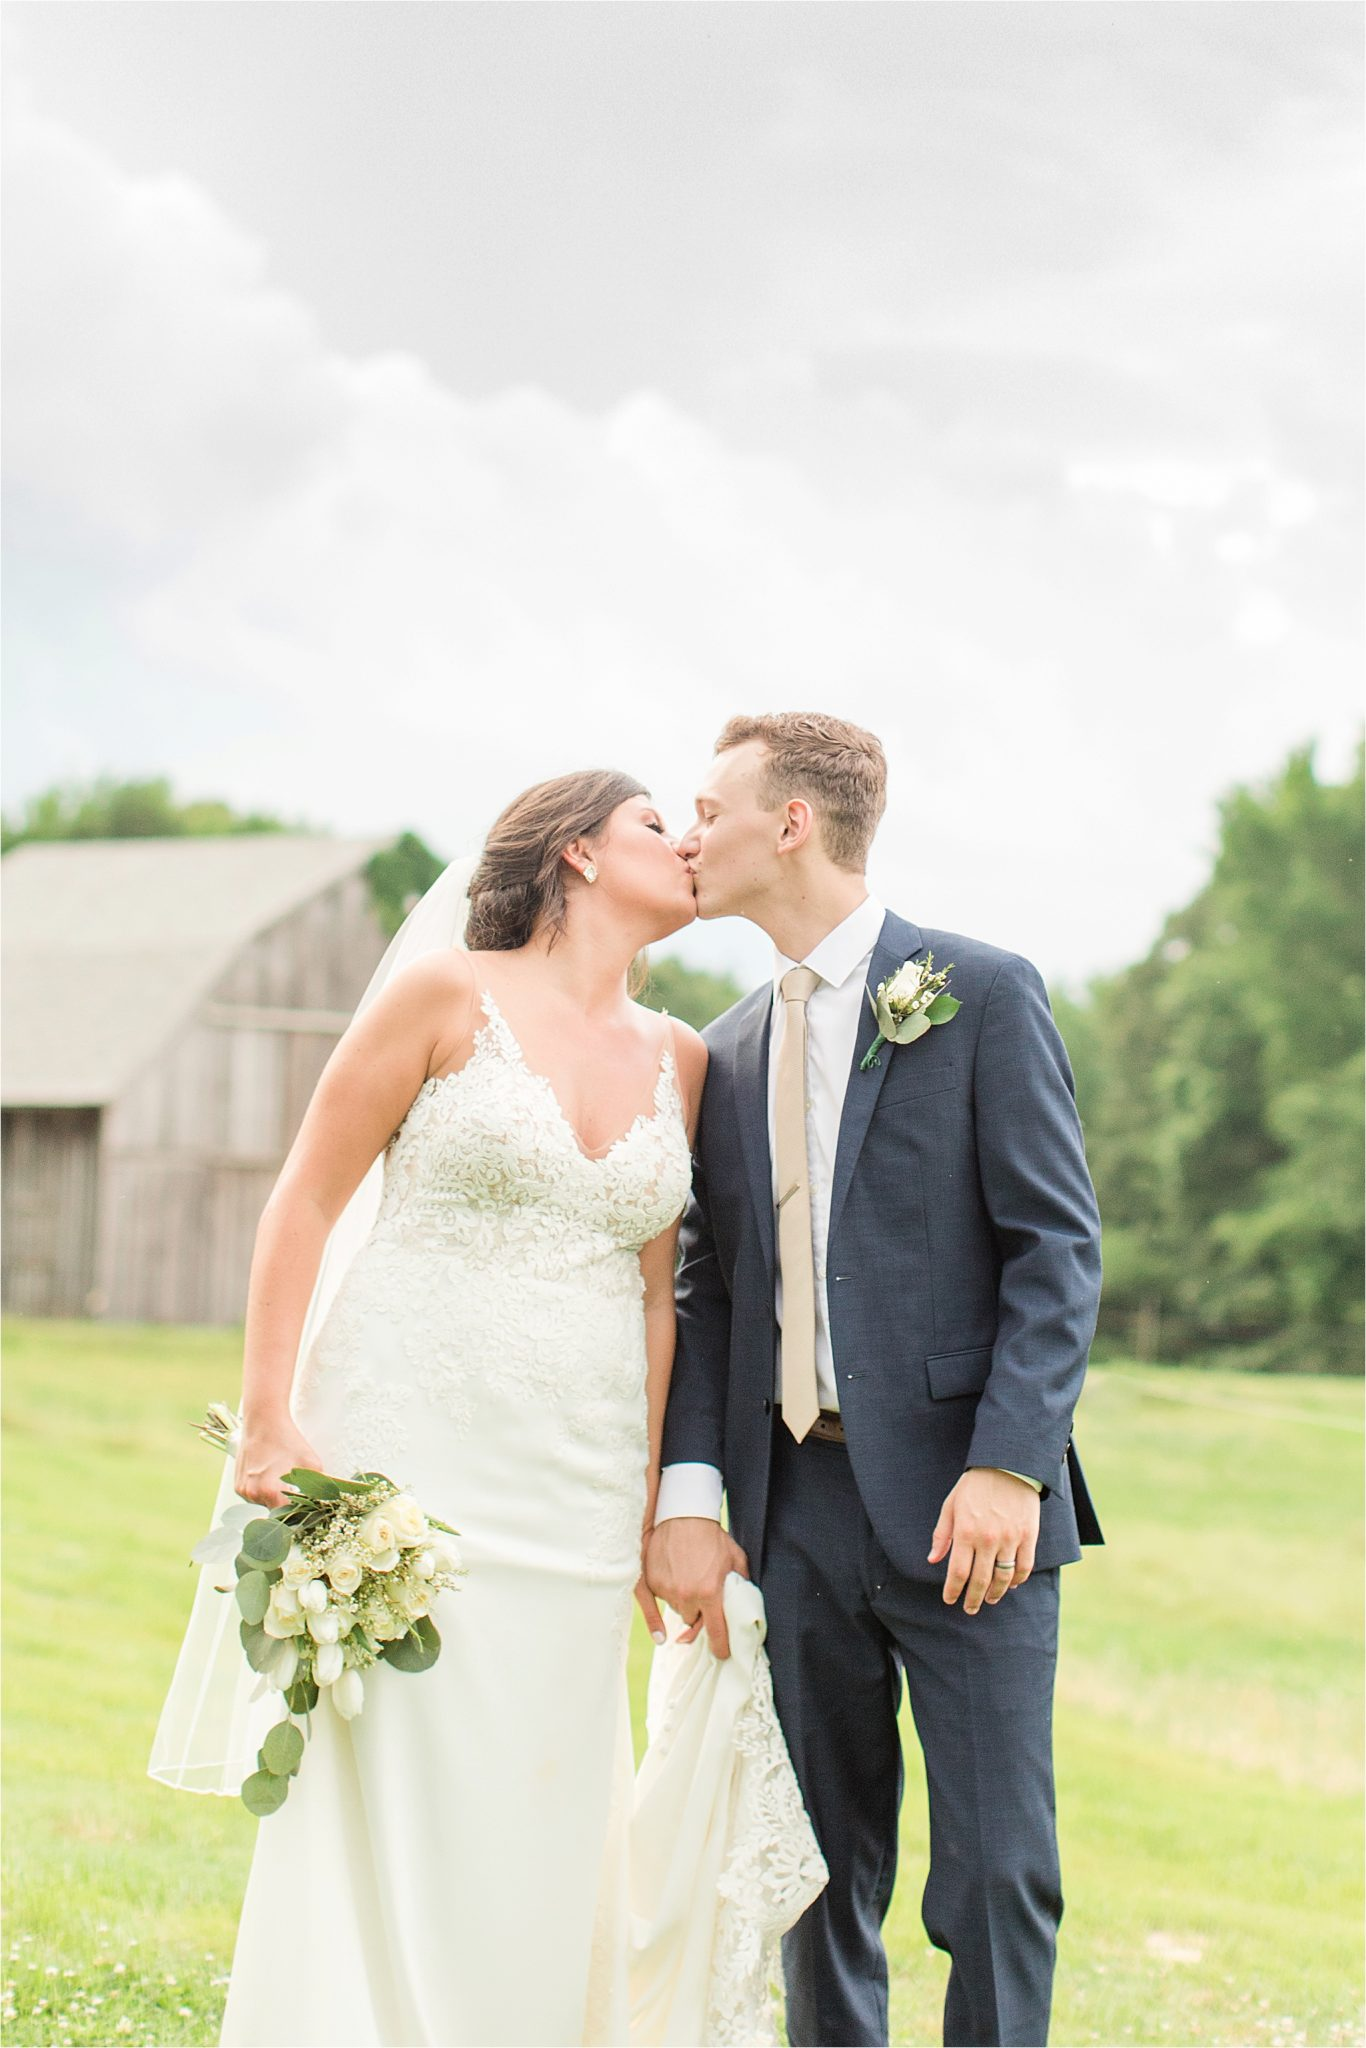 Hedge Farm Wedding, Alabama Wedding Photographer, Barn Wedding, navy and neutral themed wedding, bride and groom